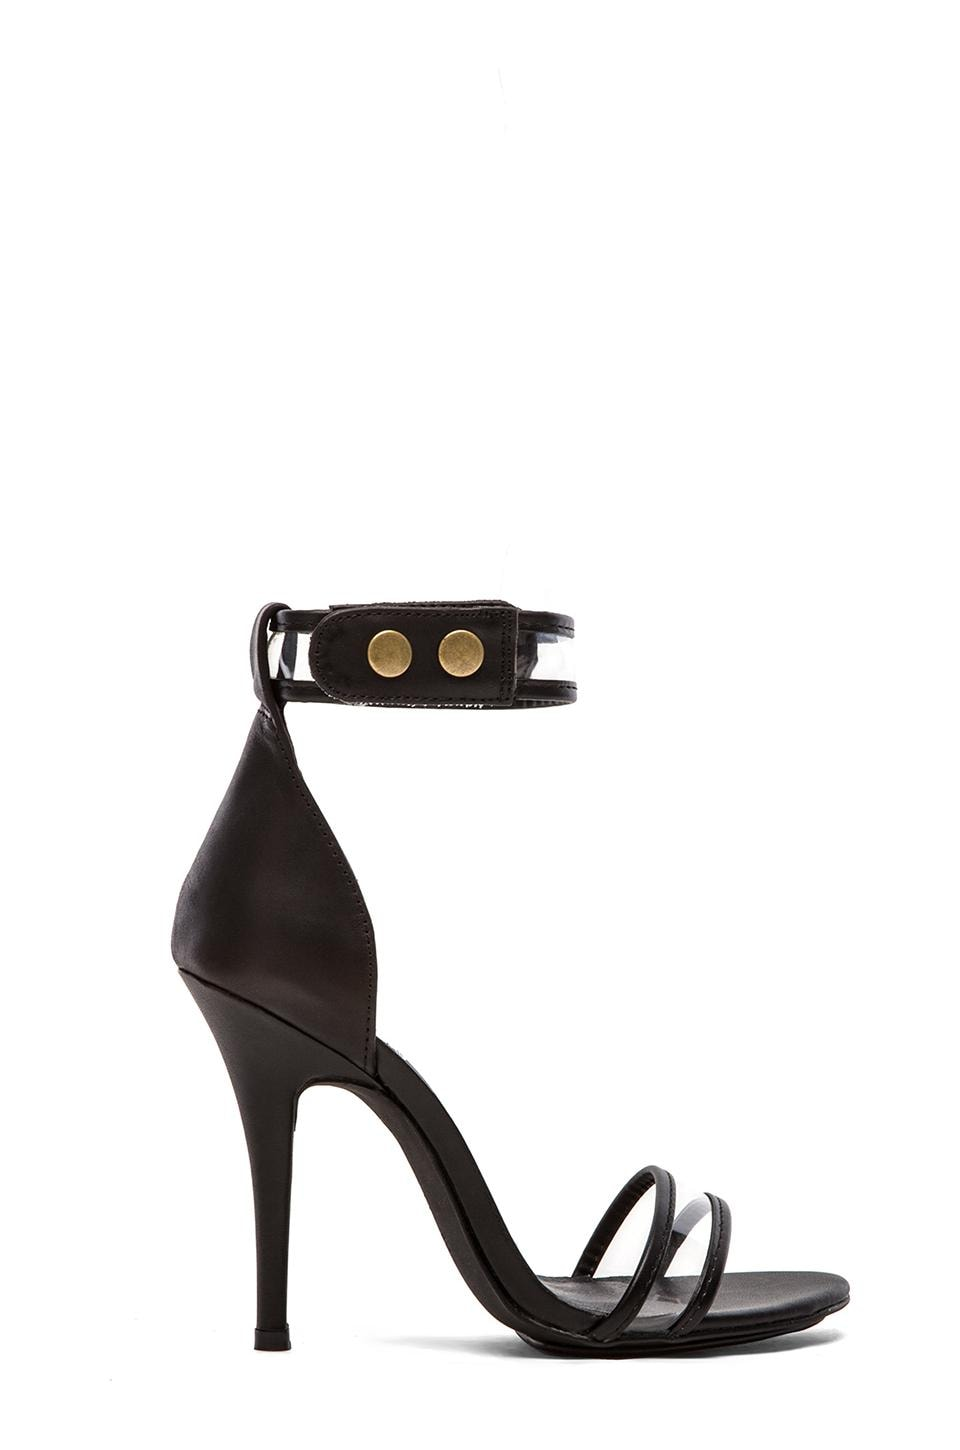 Sol Sana Hero Heel in Black